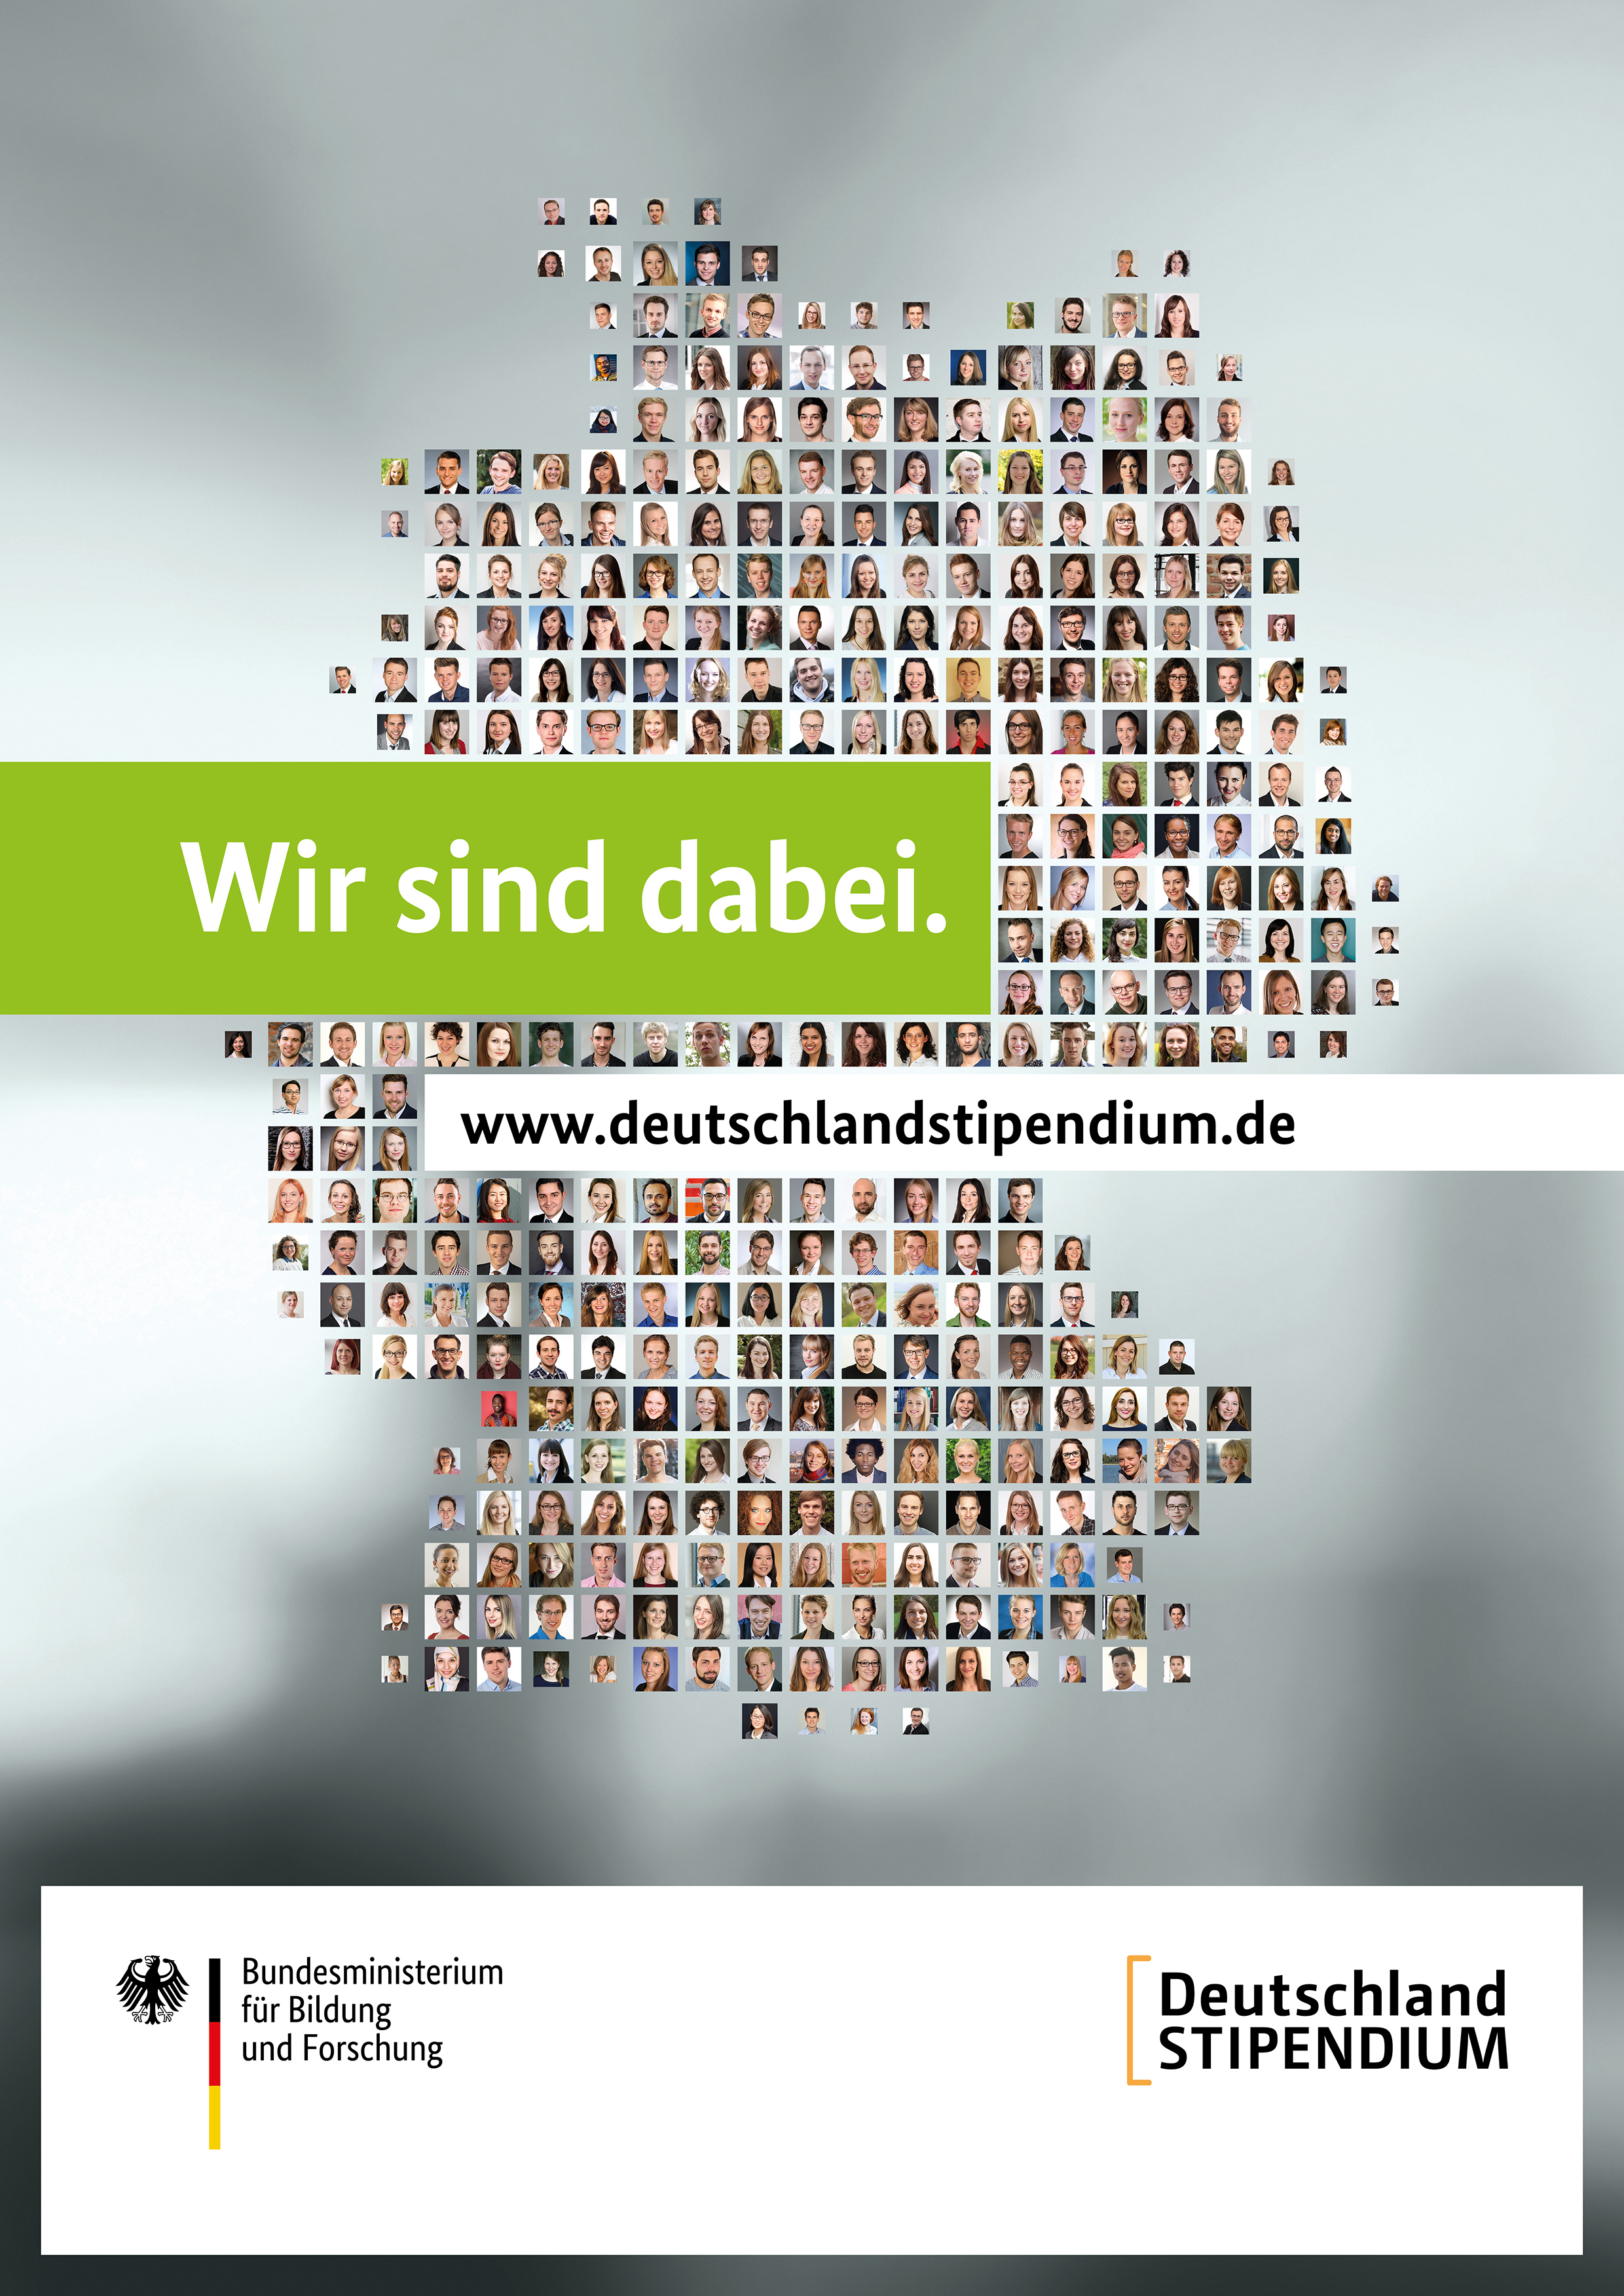 10-year 'Germany Scholarship' from Goethe University -The Banking Association of Hessen is involved-